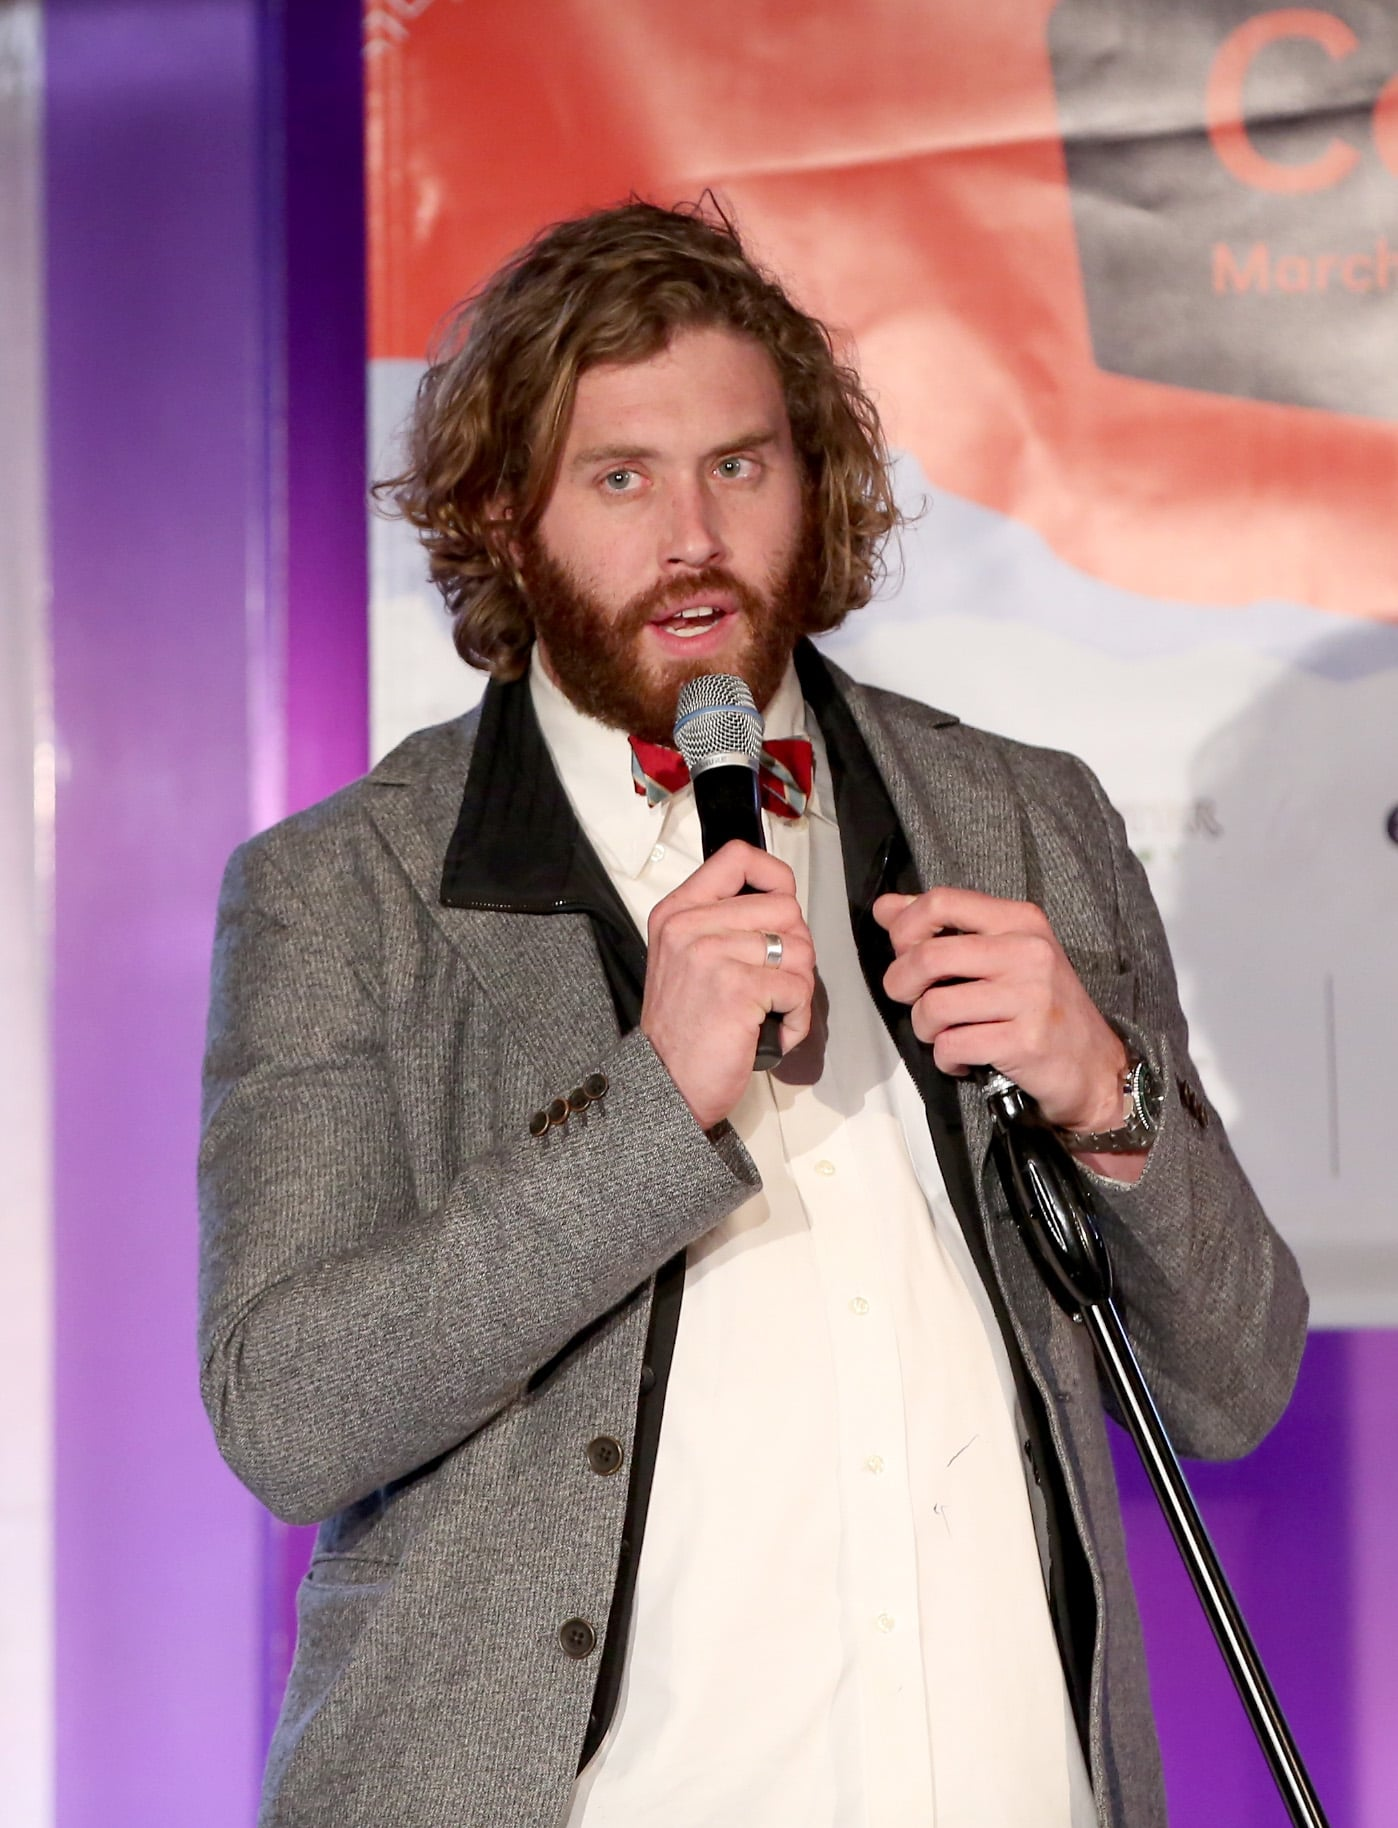 T.J. Miller also took the stage on Sunday with his comedy.